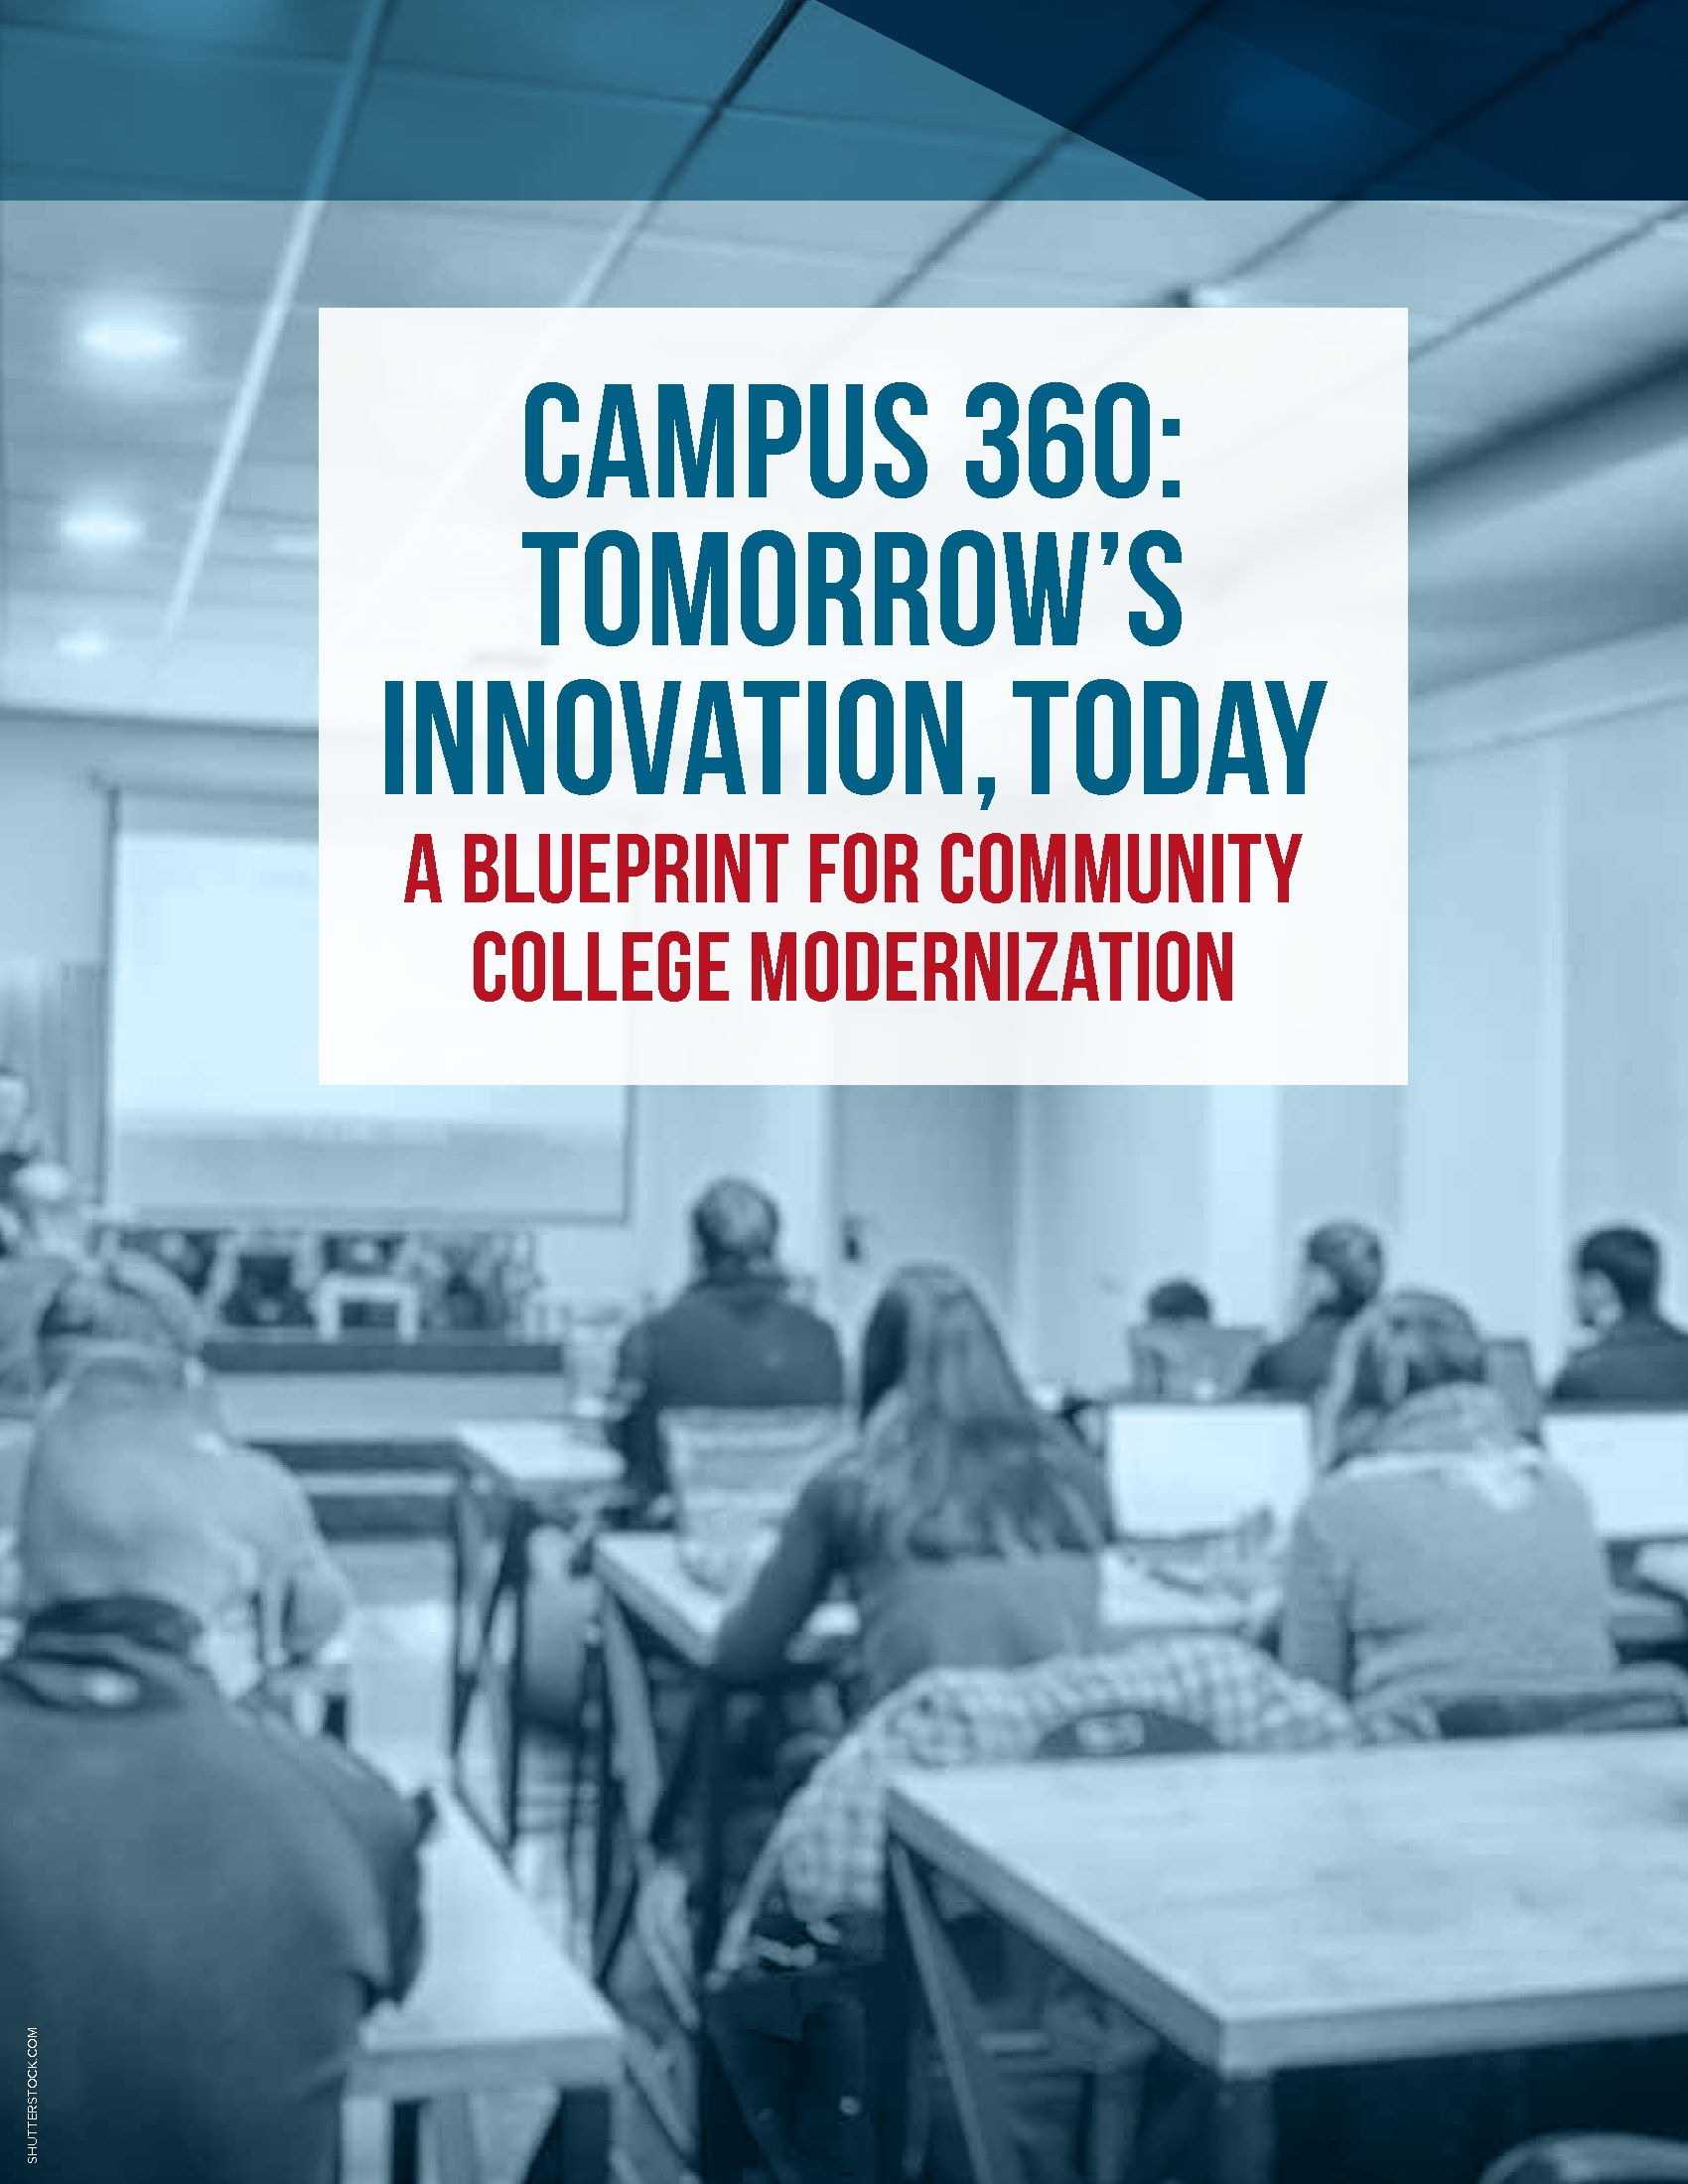 Campus 360: Tomorrow's Innovation, Today